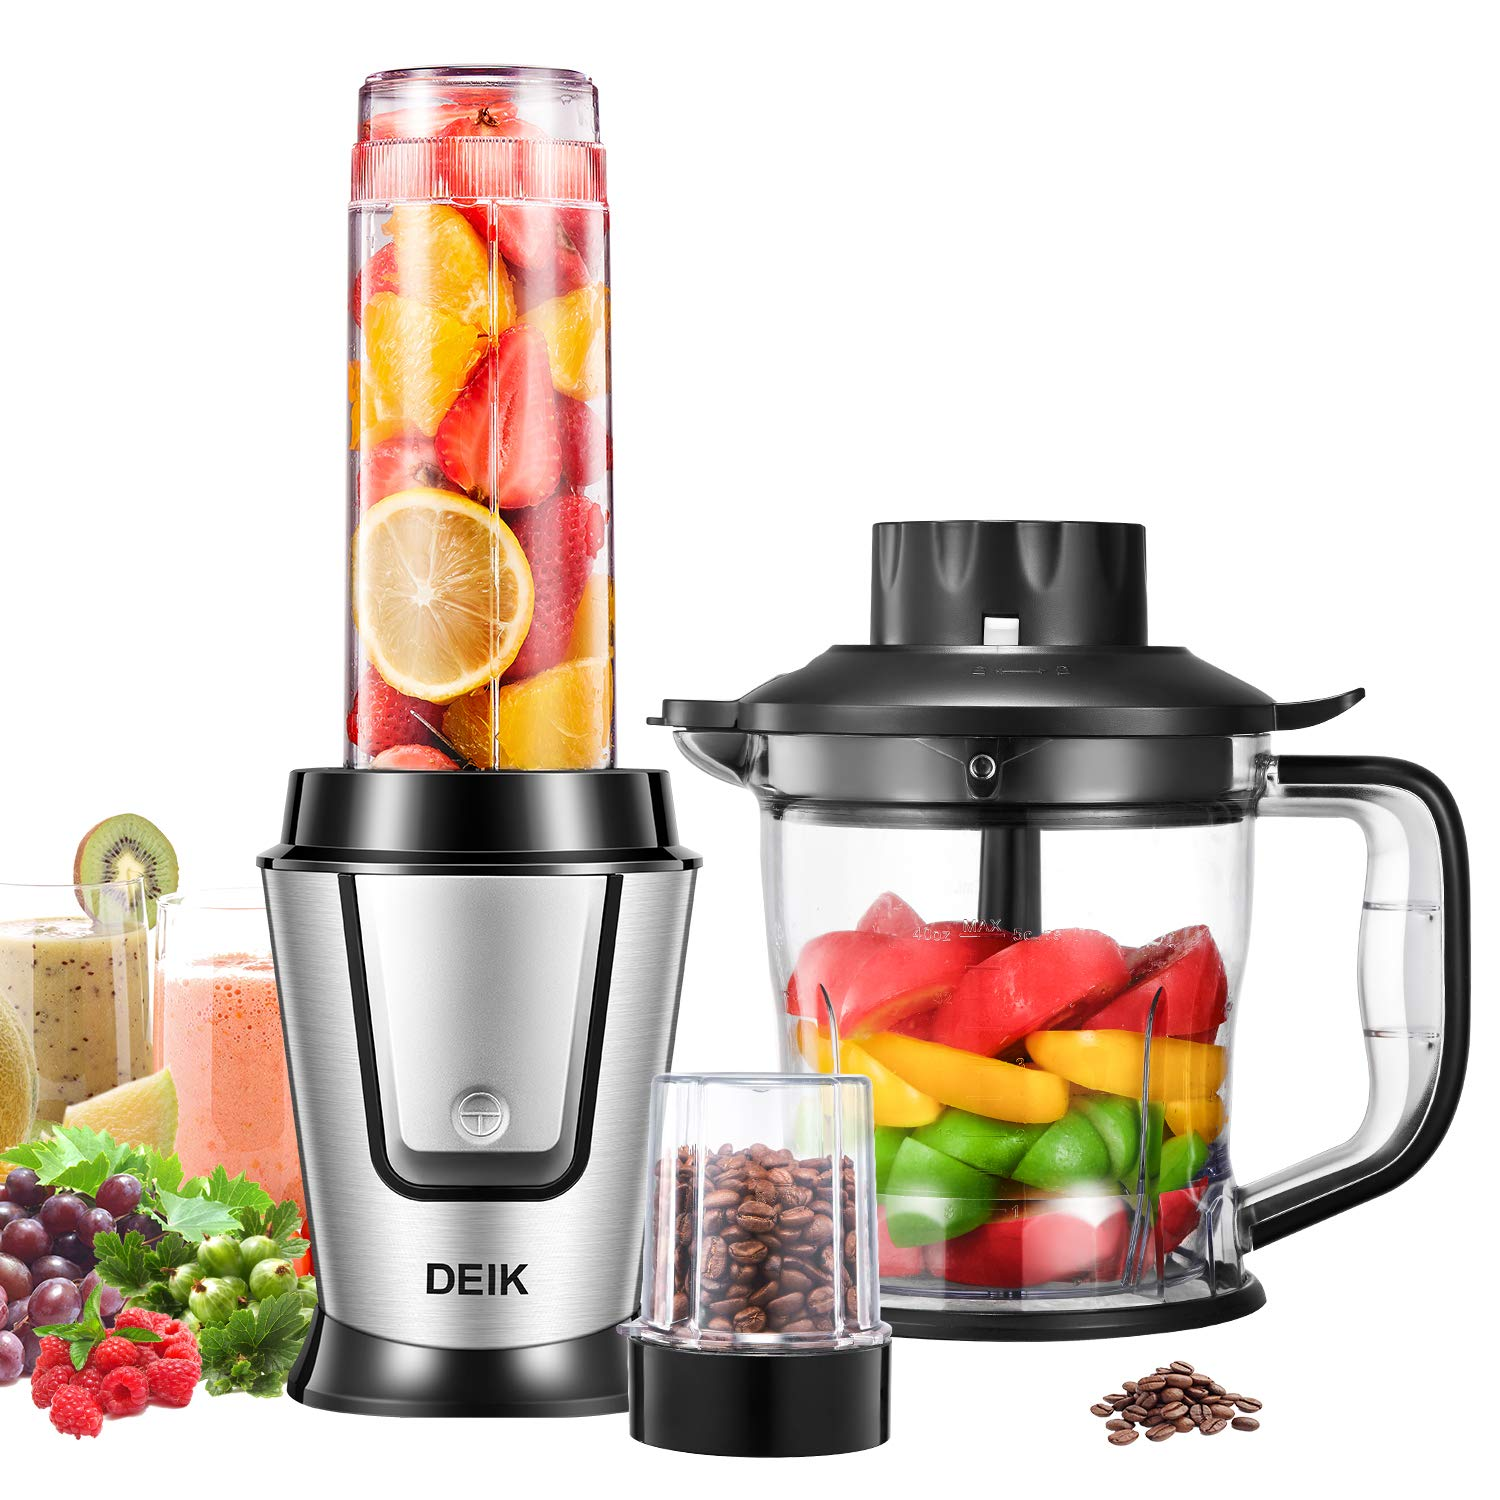 Smoothie Blender, Deik 3-in-1 Blender, Multifunctional Single Serve Blender with Food Chopper, Electric Coffee Grinder, 500W with 570ml BPA-Free Bottle